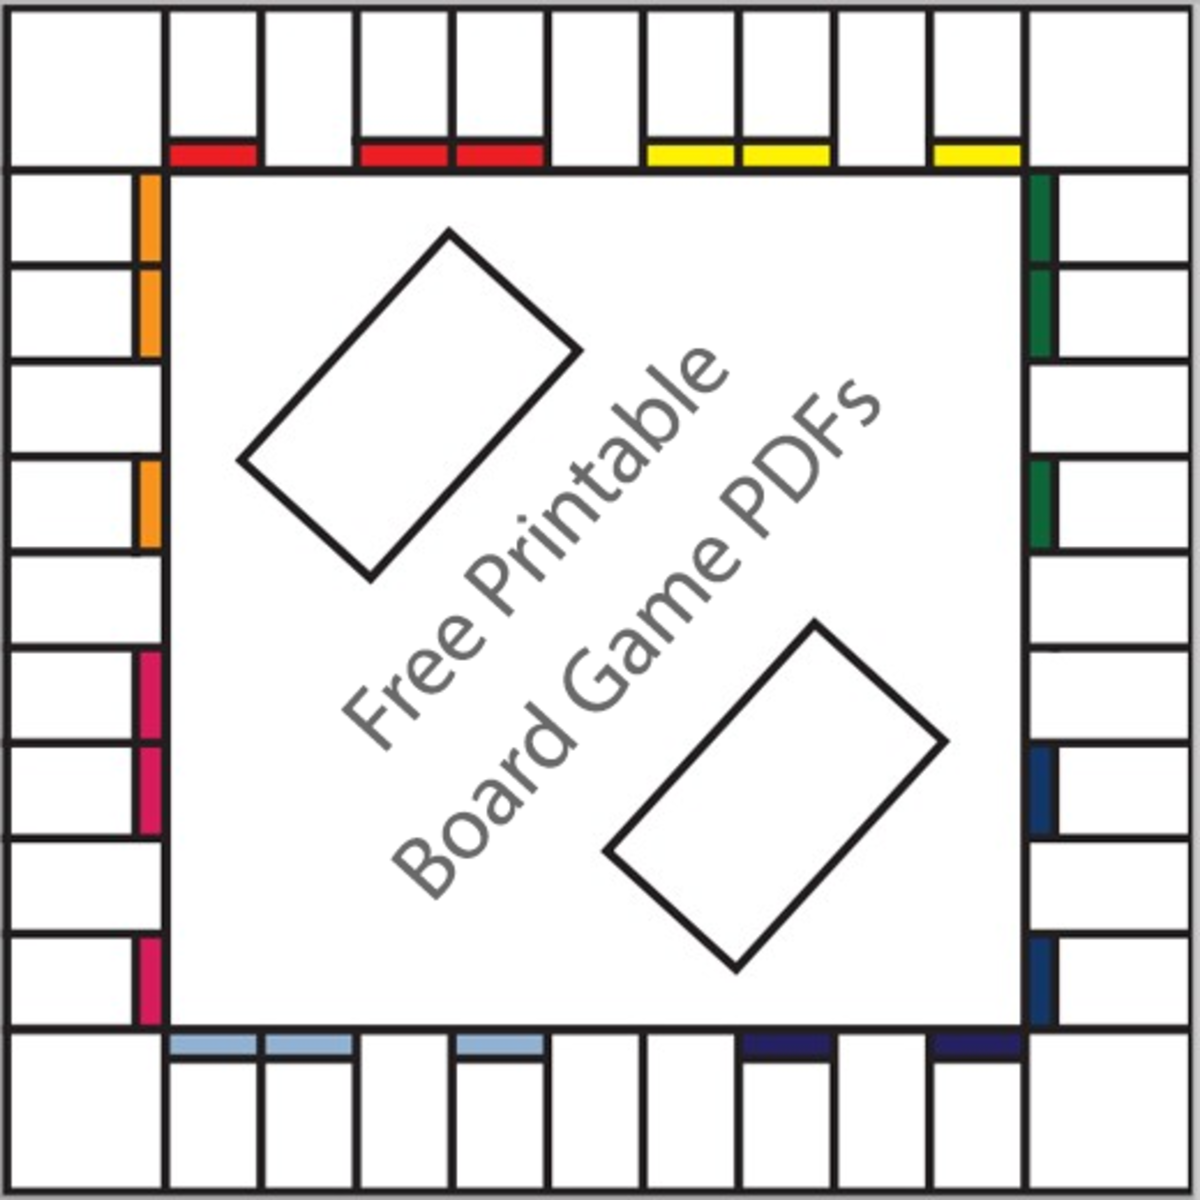 16 Free Printable Board Game Templates me6fWzdL